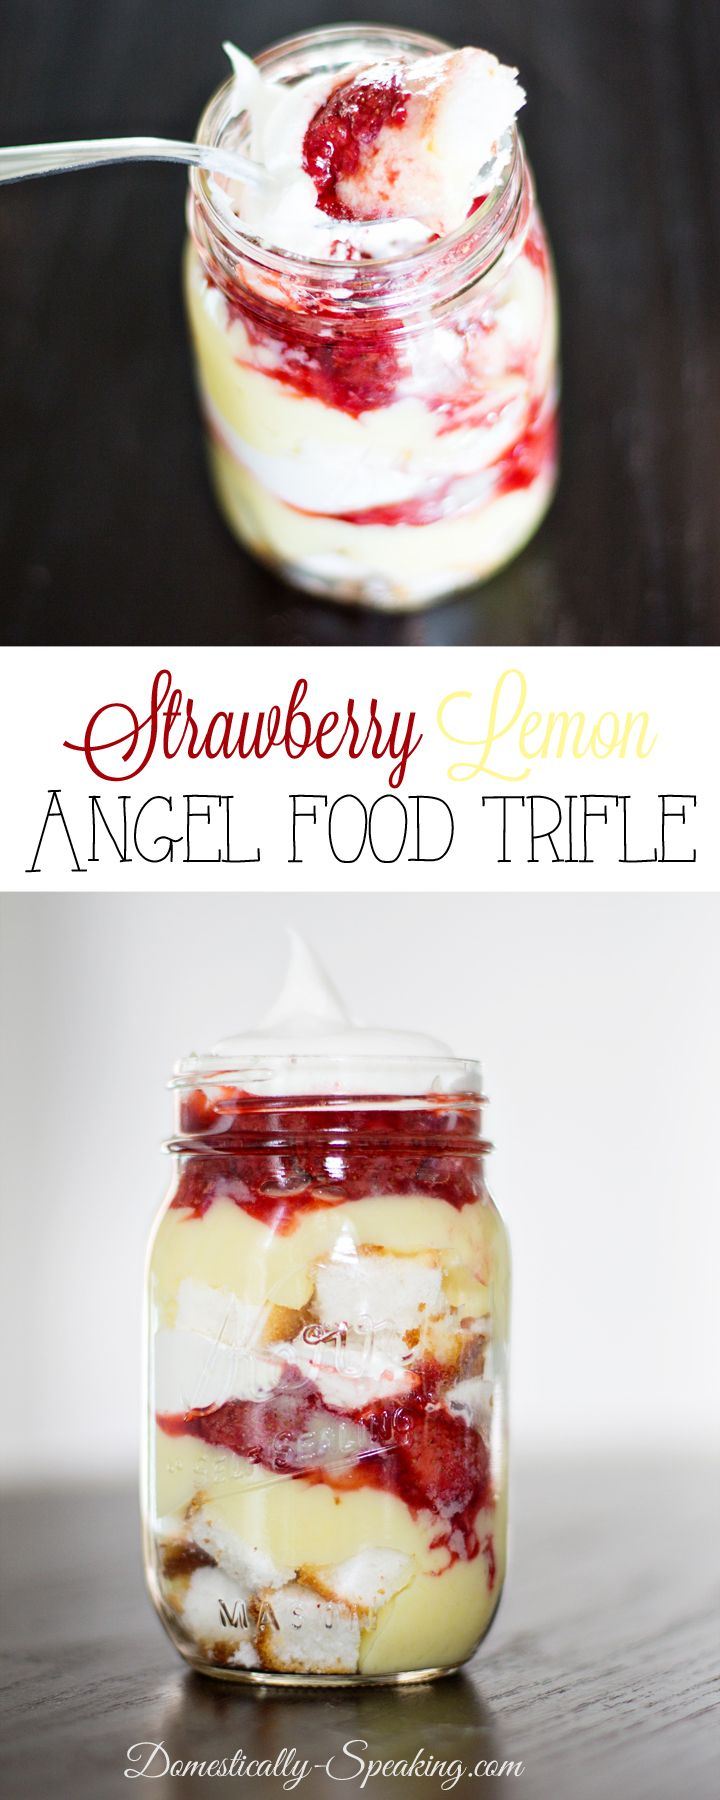 Mason Jar Strawberry Lemon Angel Food Cake Trifle Perfect Spring & Summer Dessert!